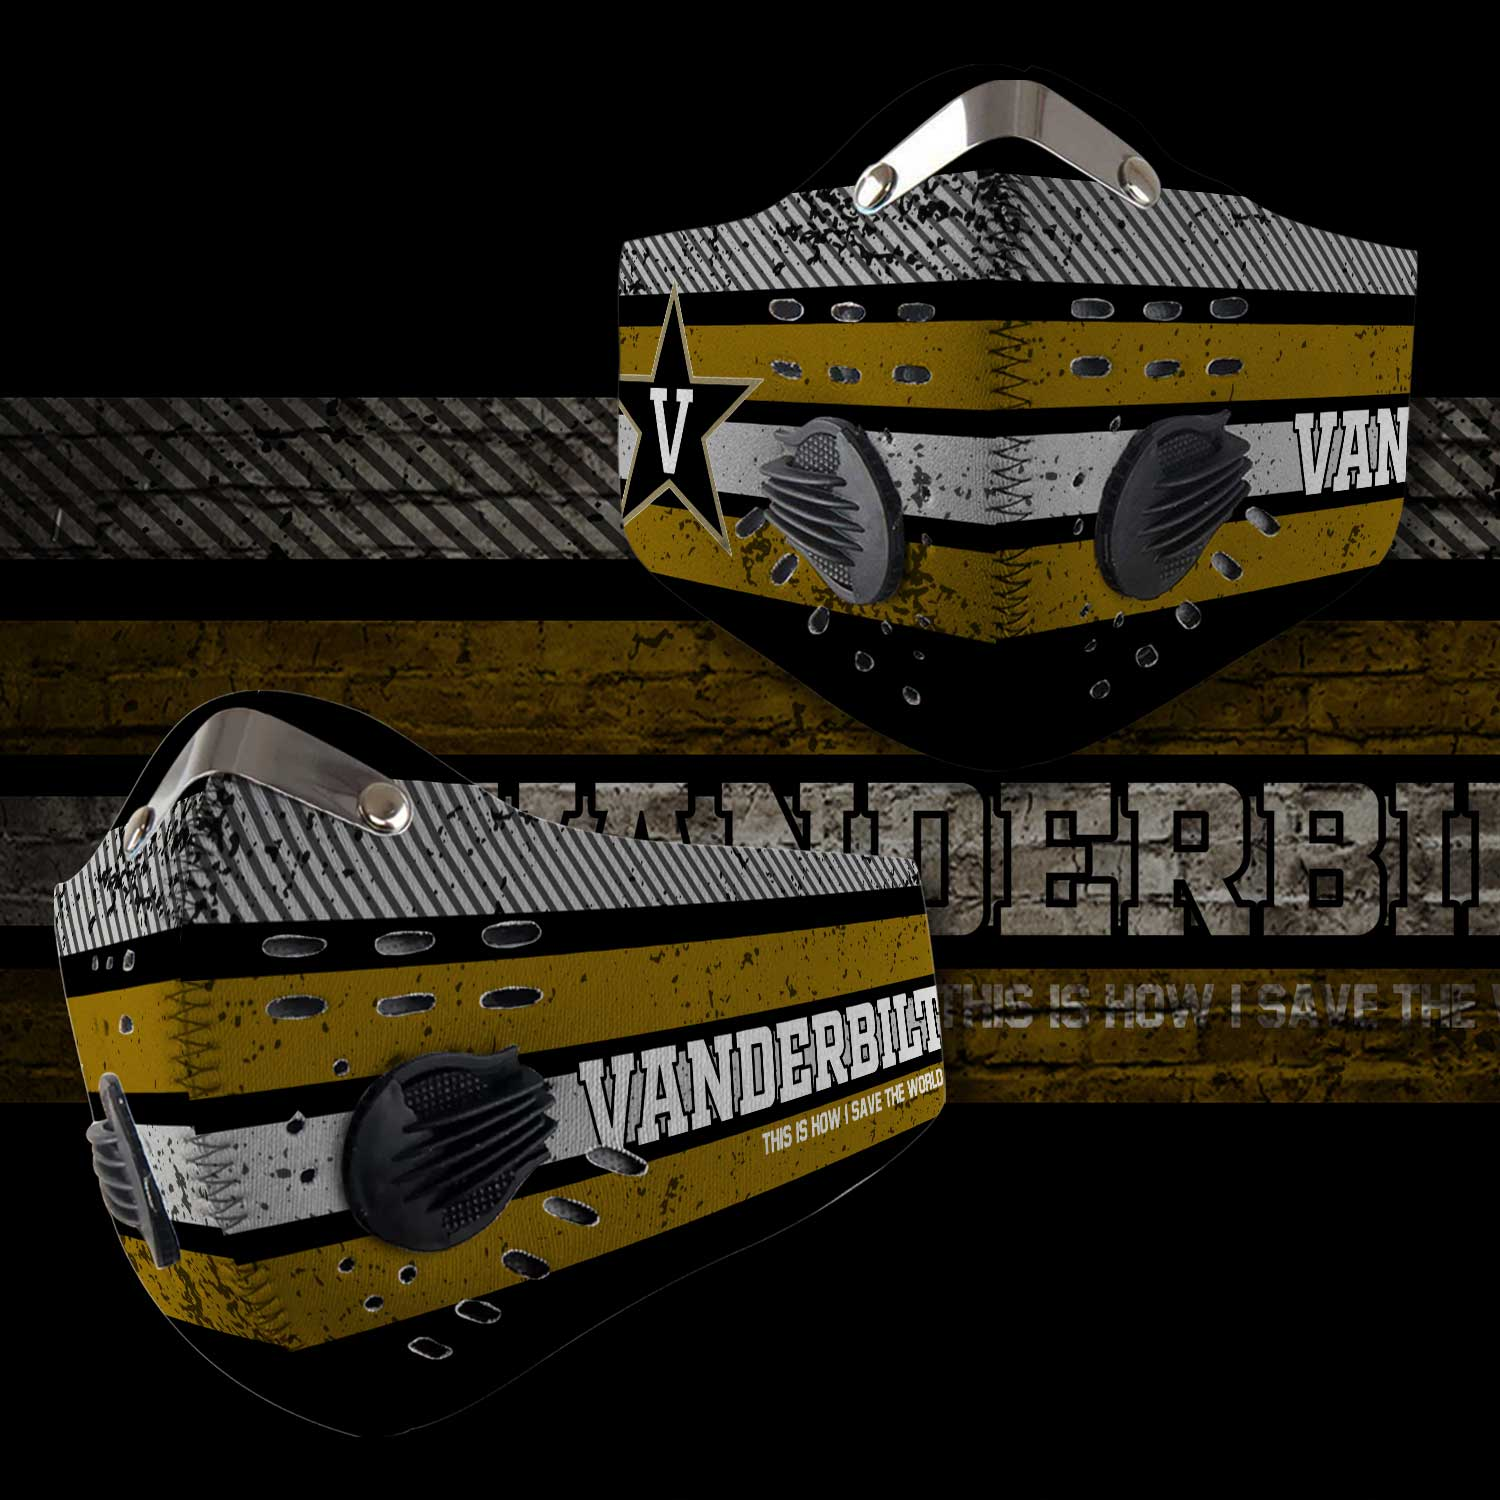 Vanderbilt commodores this is how i save the world carbon filter face mask 2